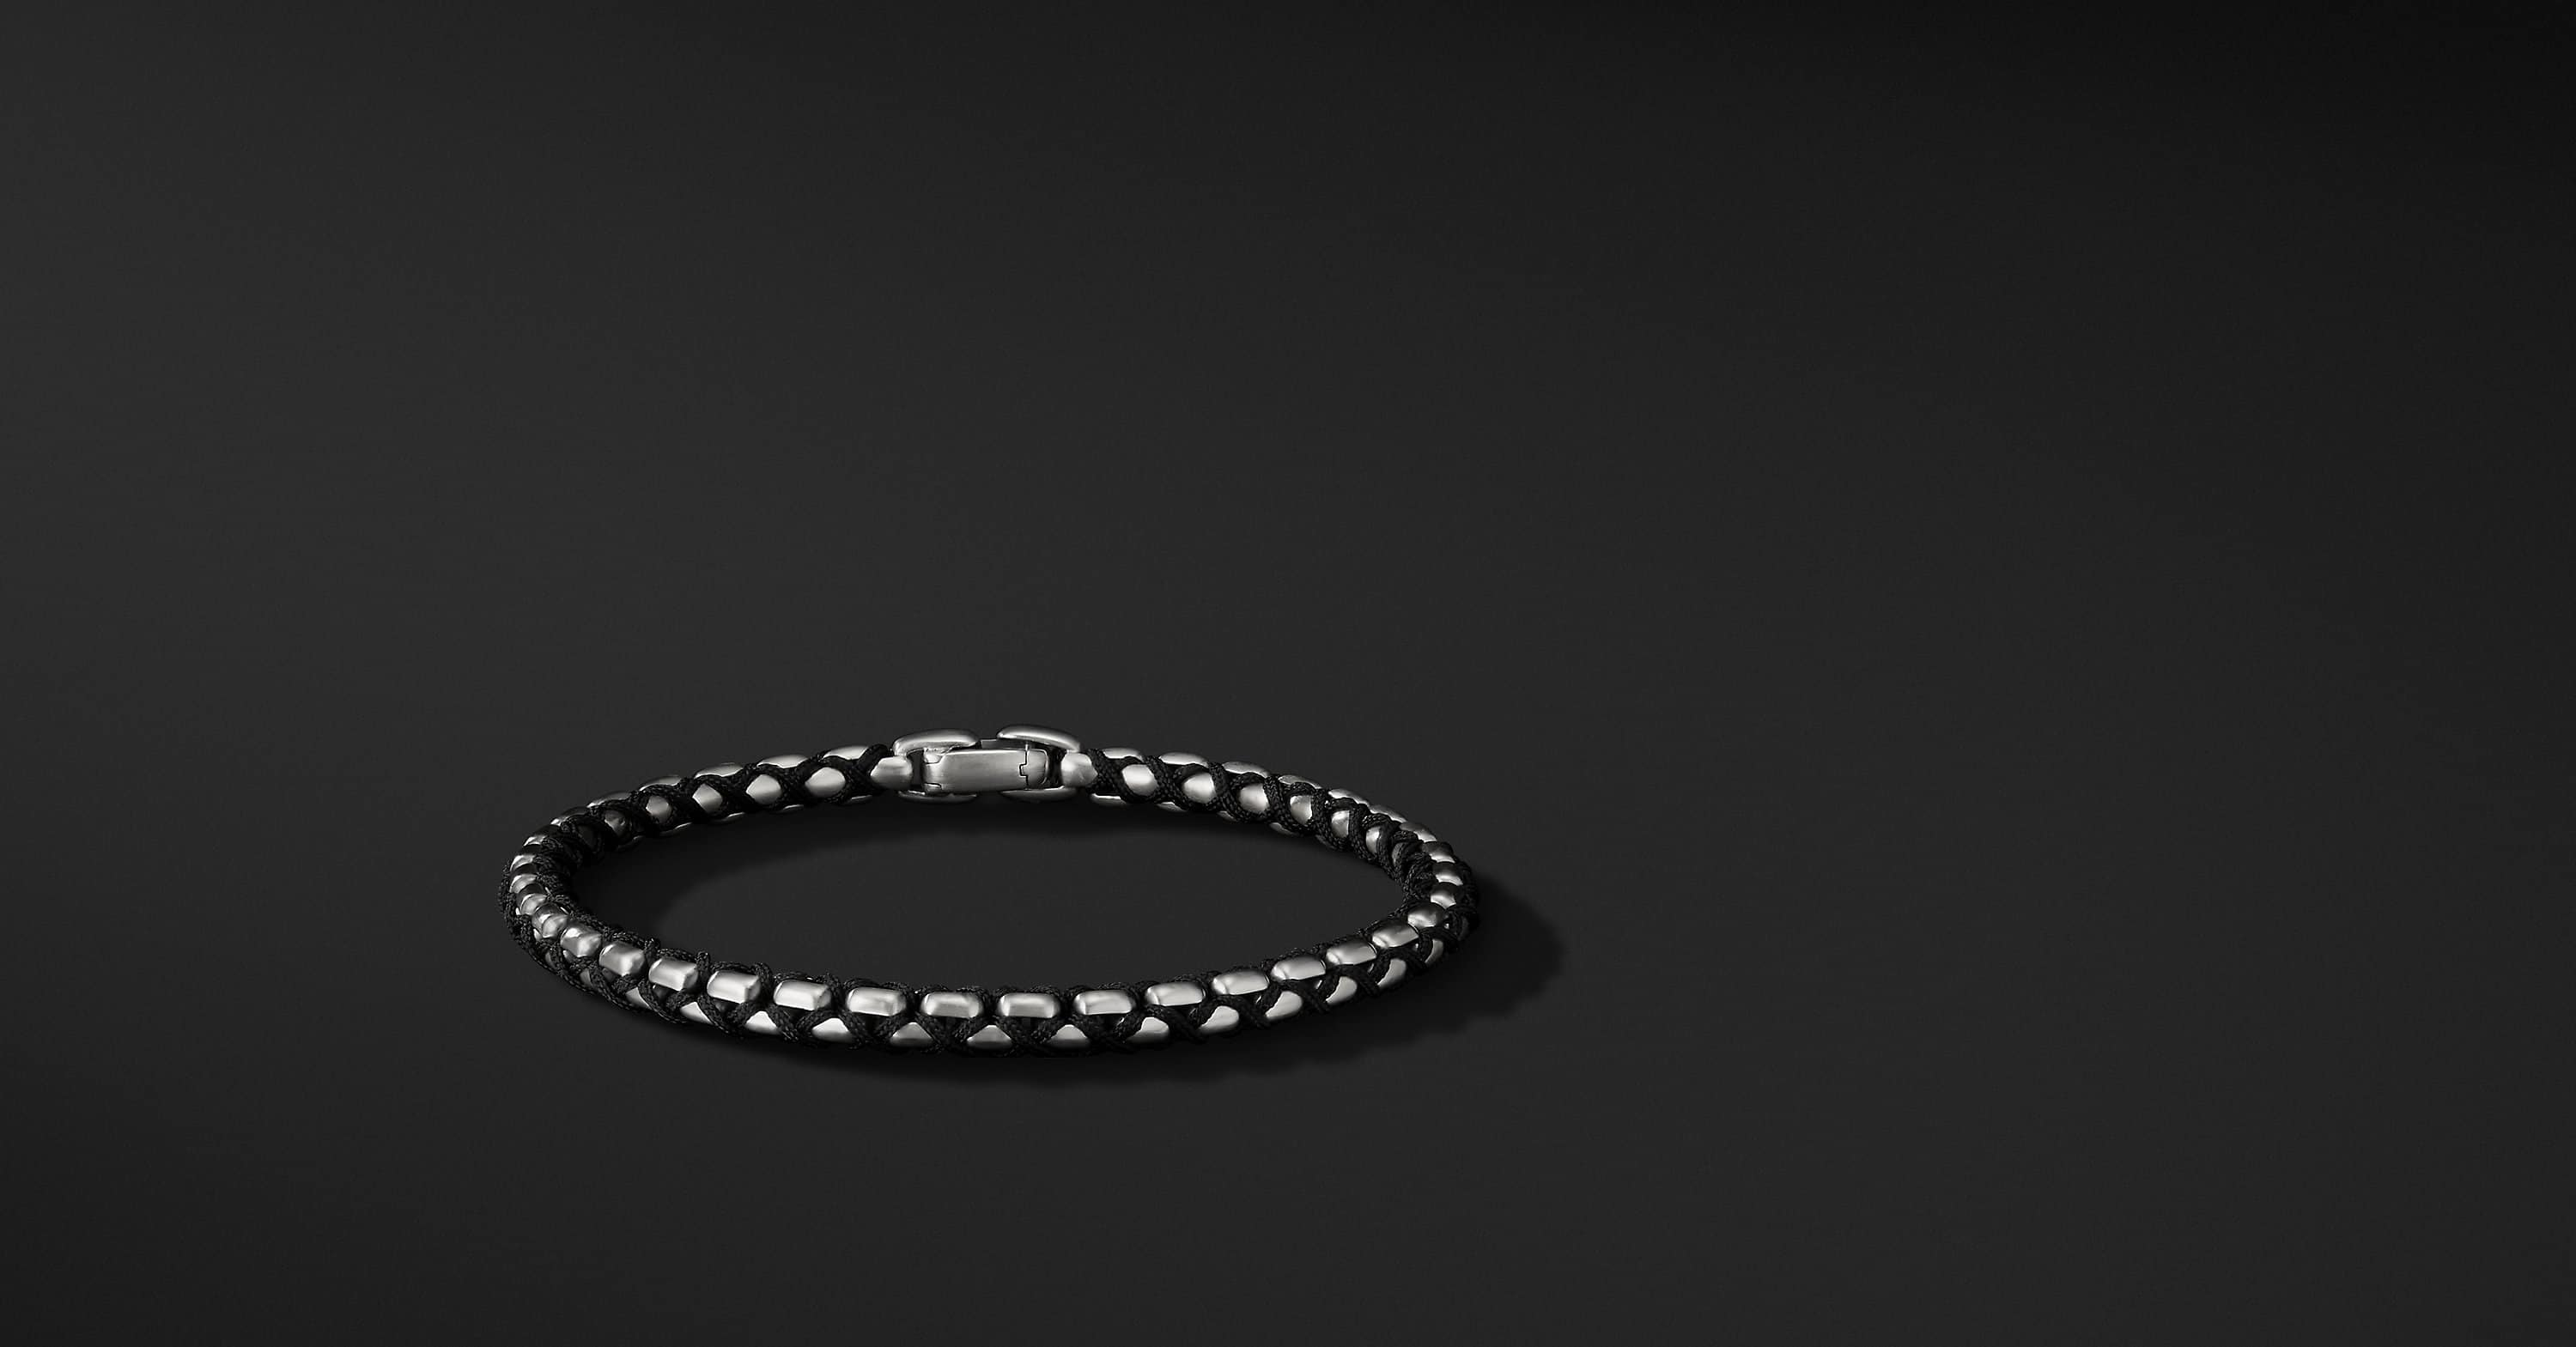 Woven Box Chain Bracelet, 4.8mm